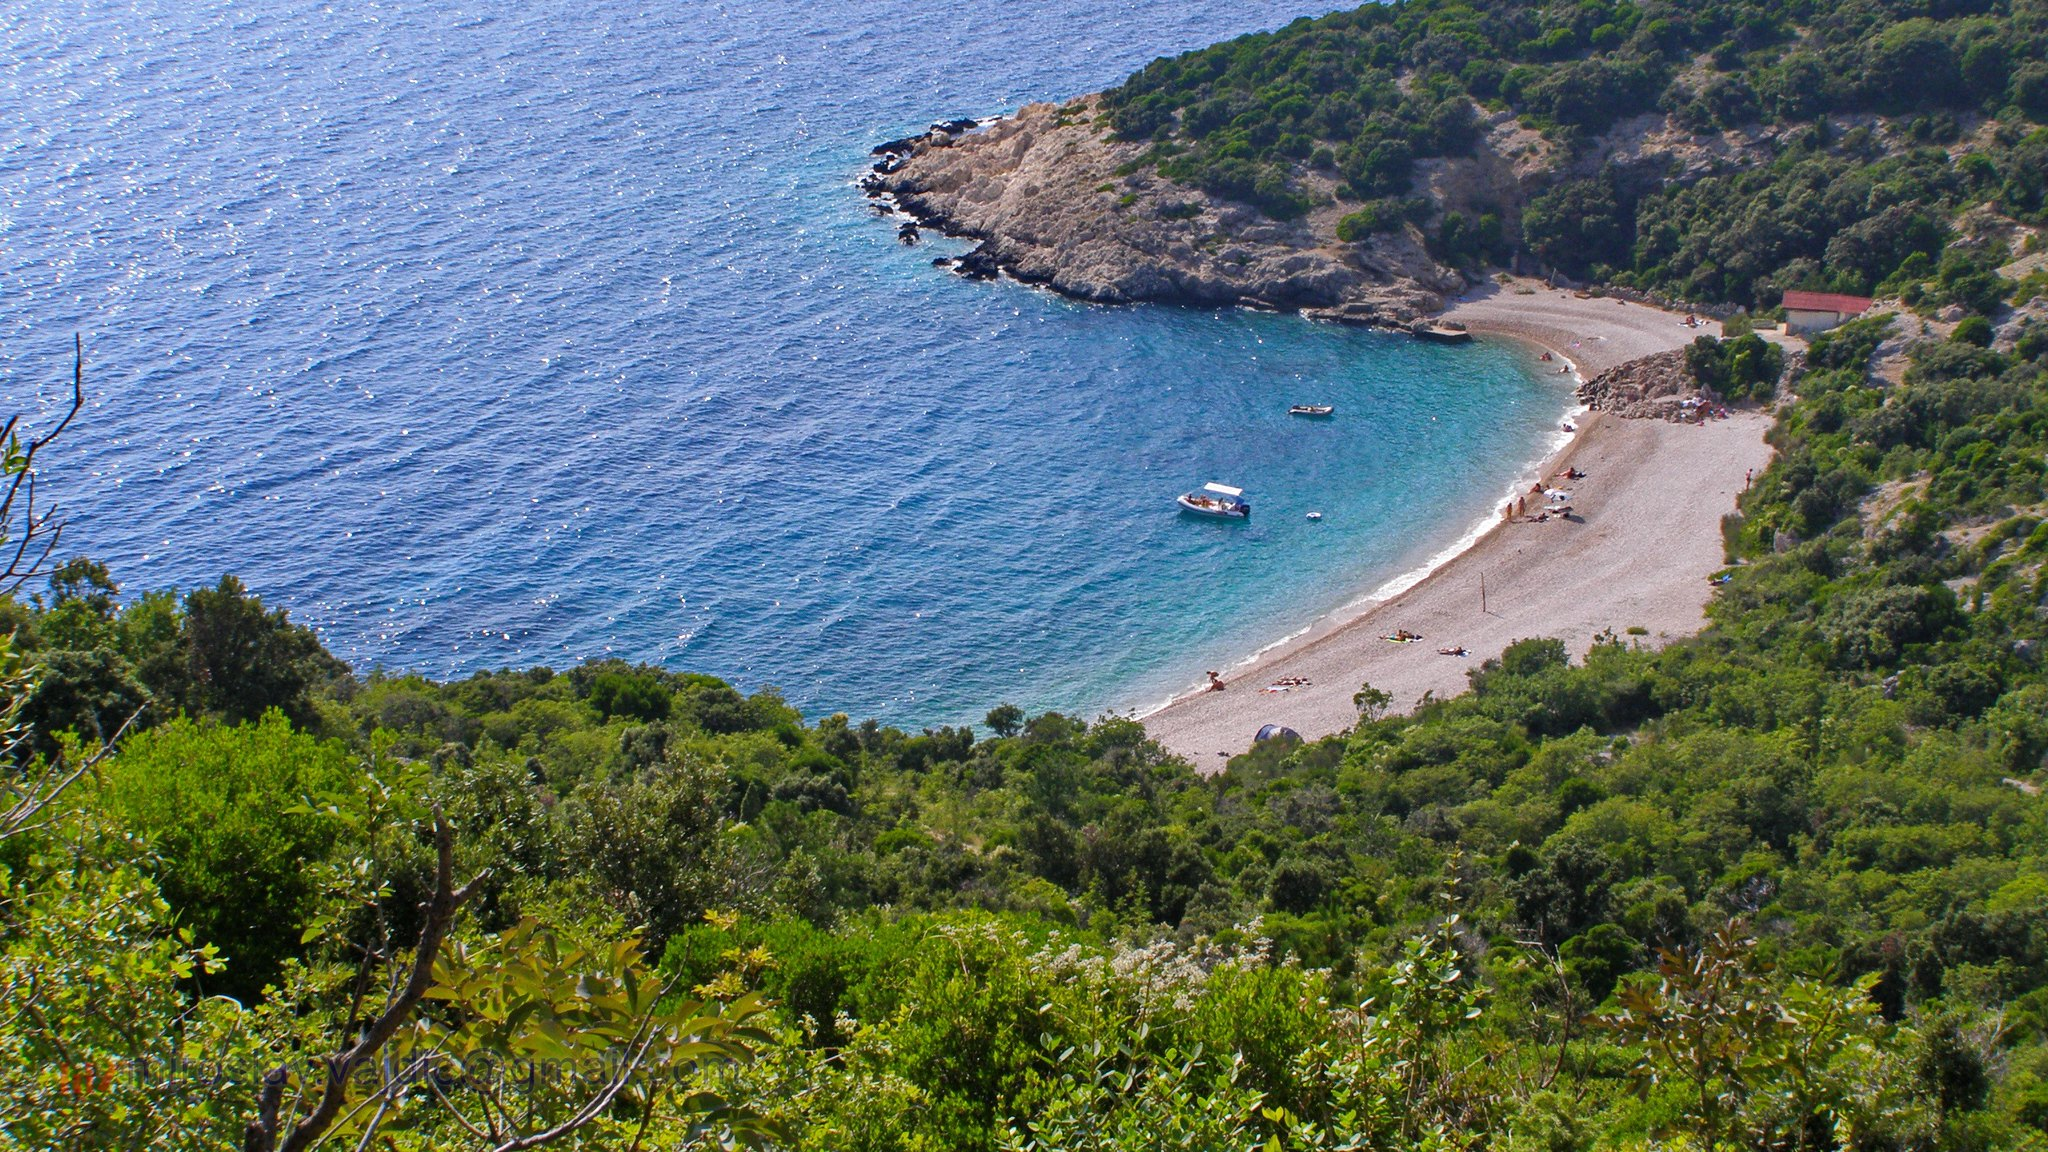 8 Best Things to do in Cres Island, Croatia